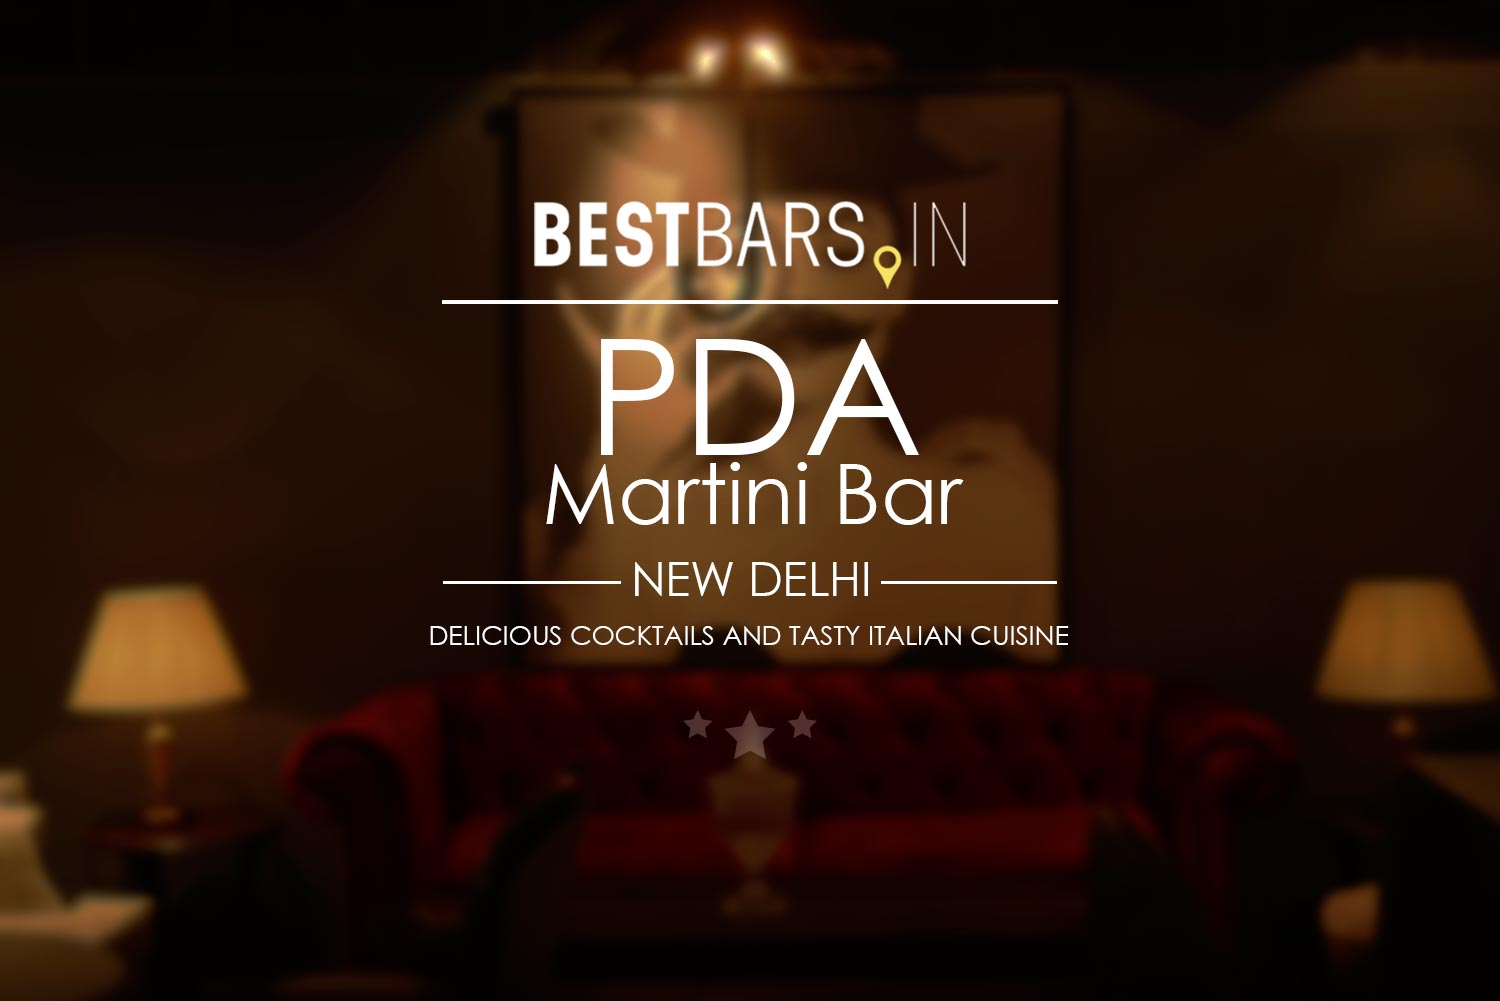 PDA Martini Bar, New Delhi